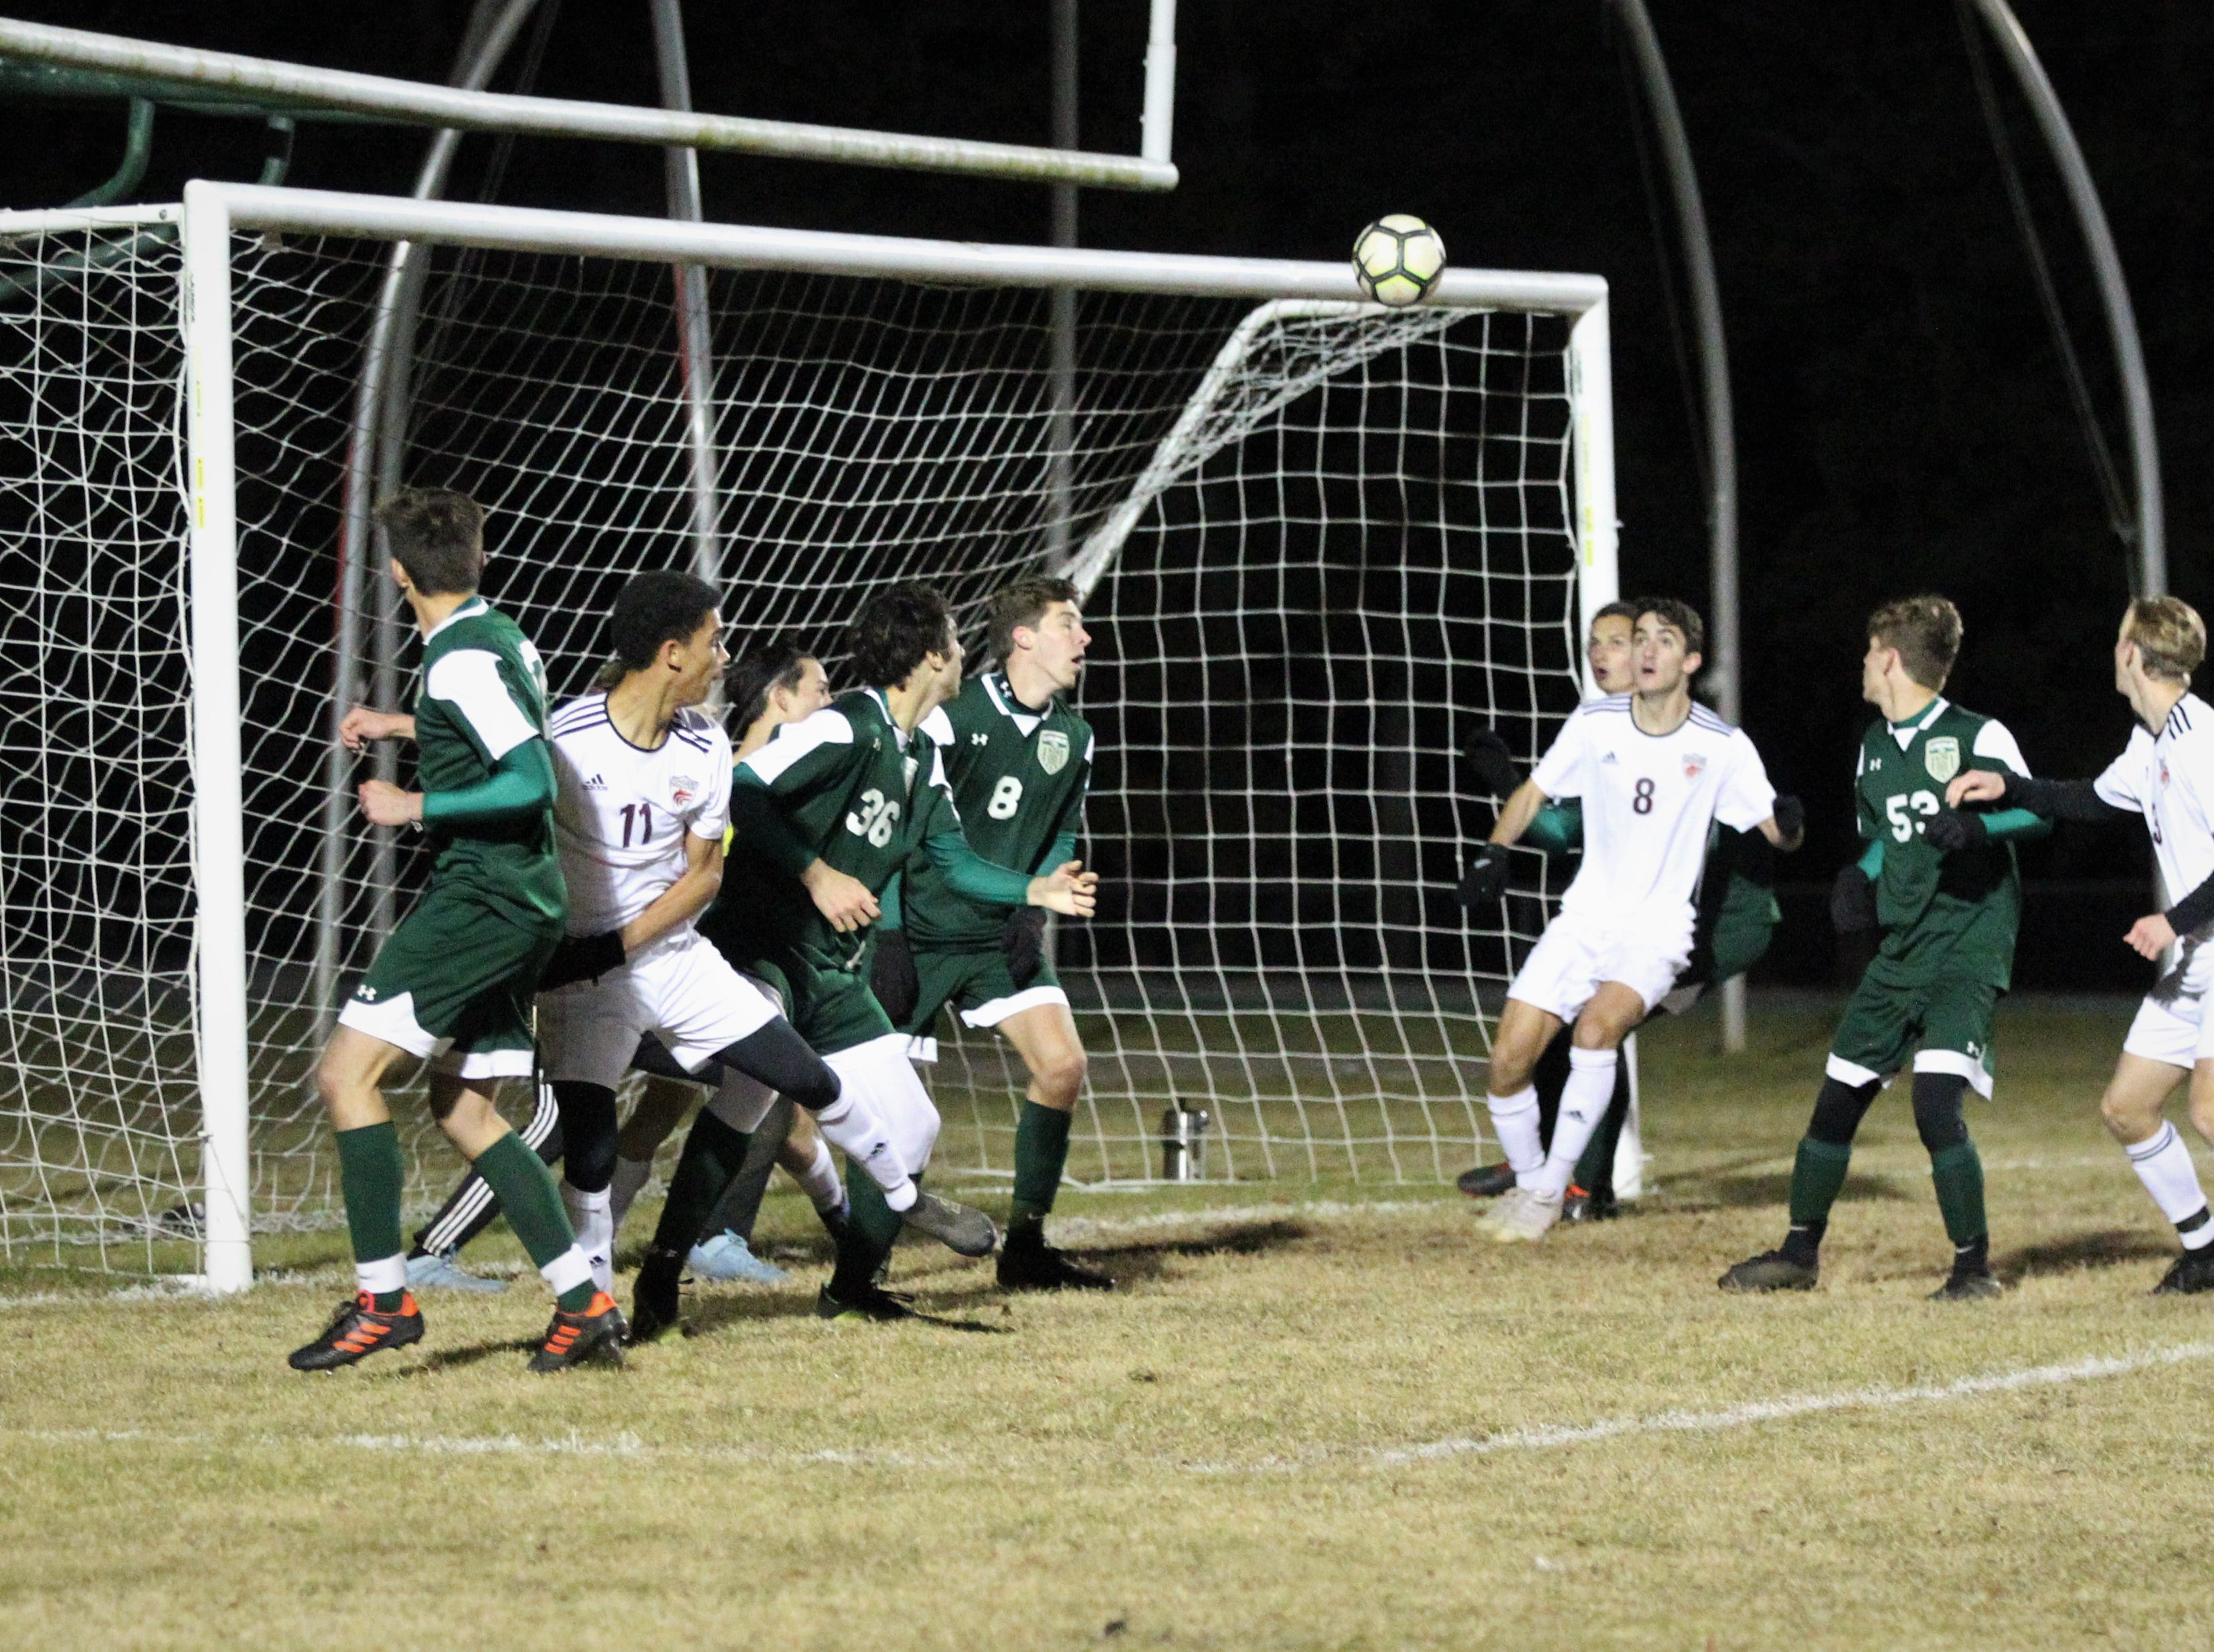 A header flick sails towards Chiles' Tag Lowery but goes over his head as Chiles' boys soccer team beat Lincoln 1-0 in a District 2-4A semifinal on Jan. 30, 2019.